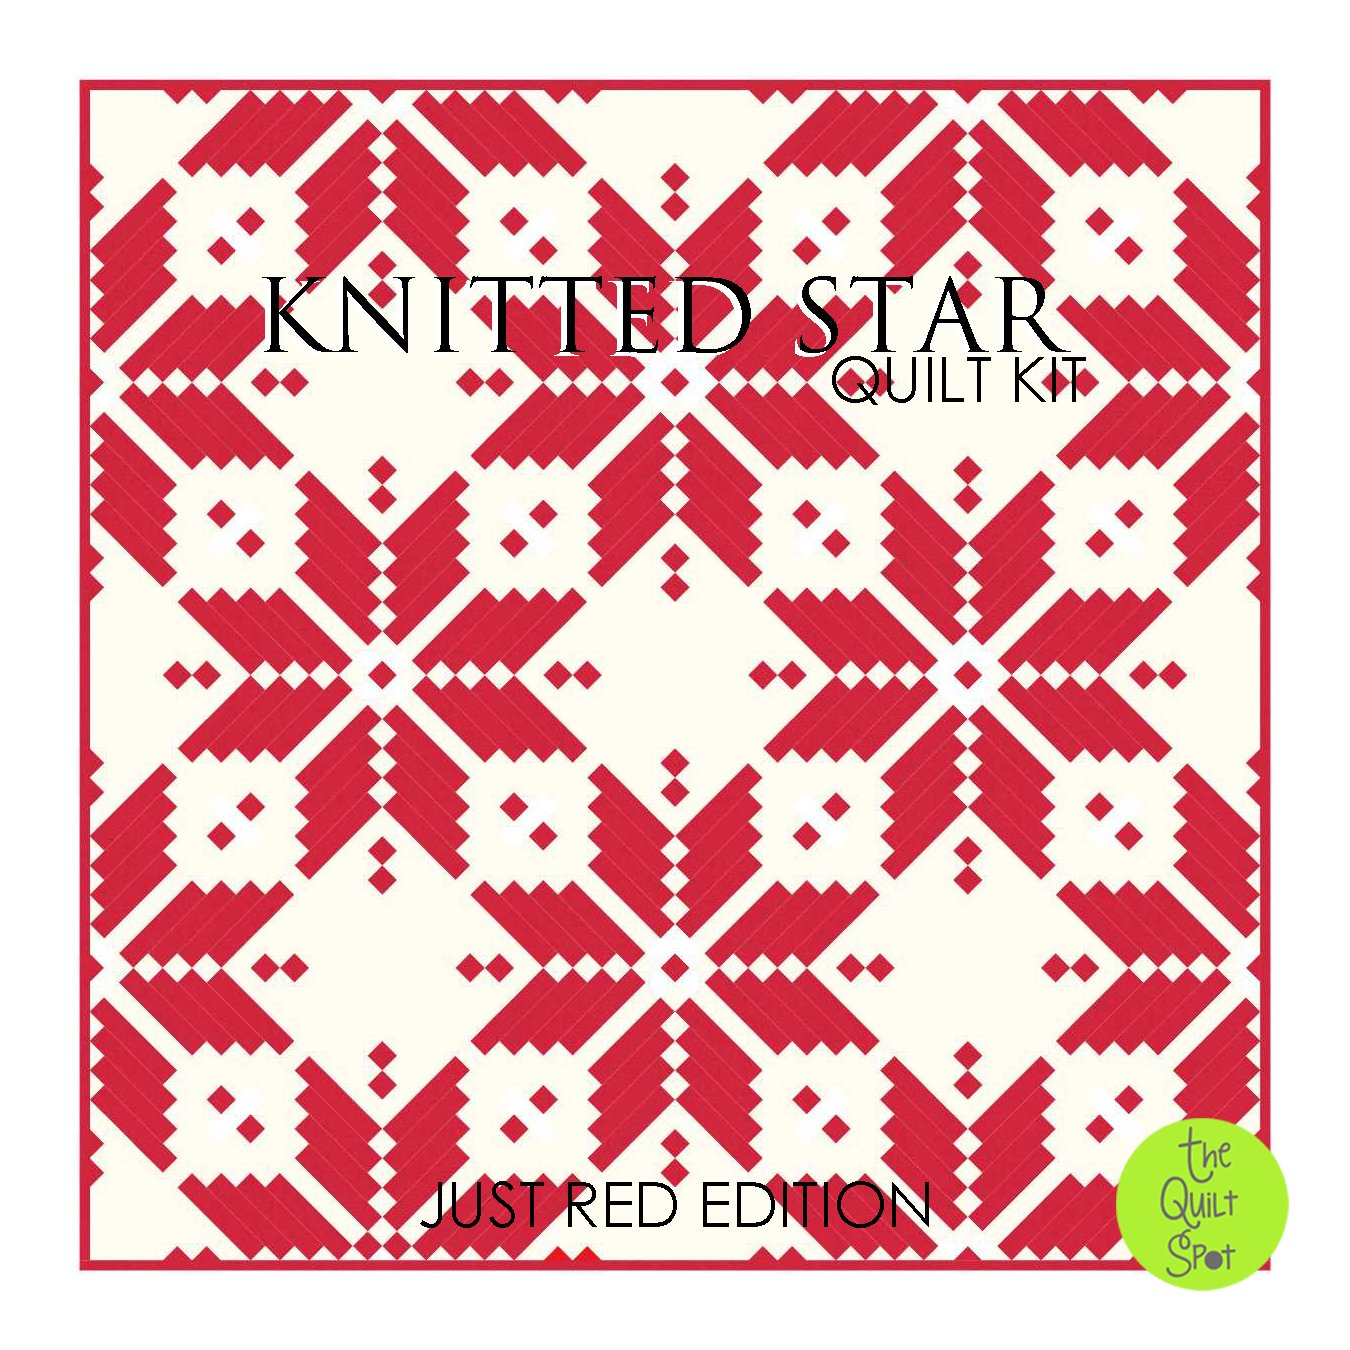 Knitted Star Quilt Kit - Just Red Edition